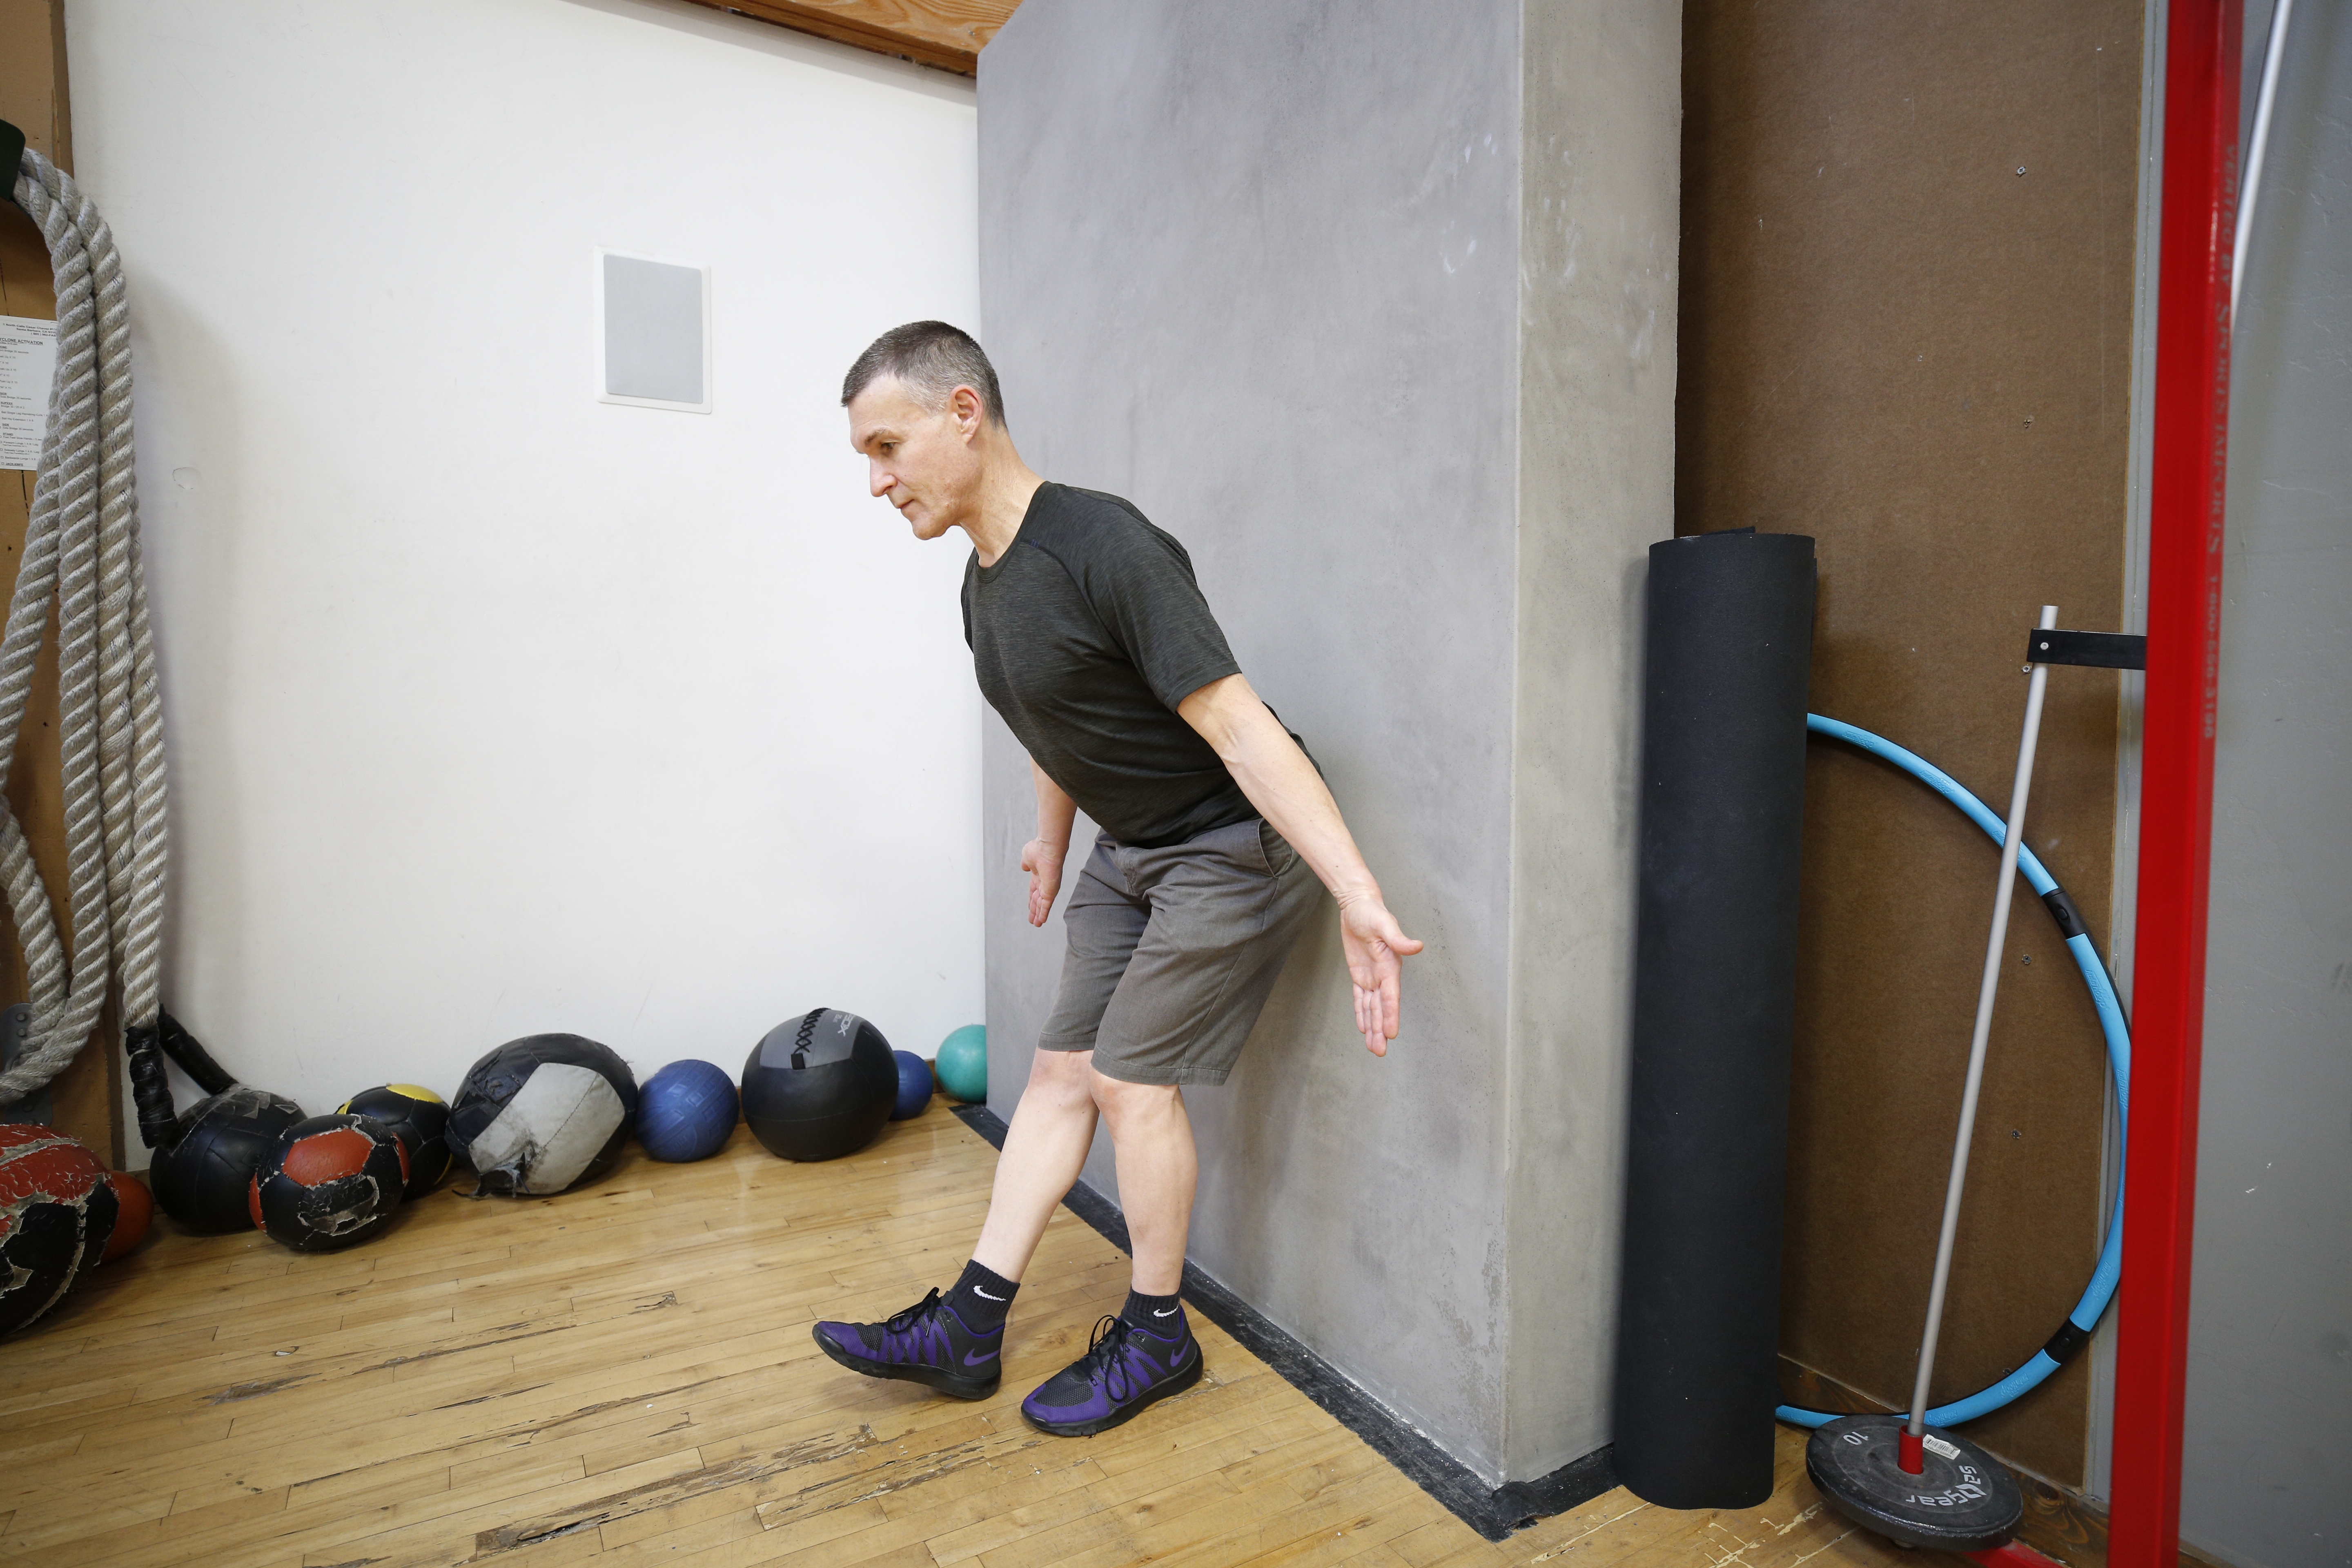 GROOVE YOUR HIP HINGE PART 3: KICK-STAND WALL HIP HINGE